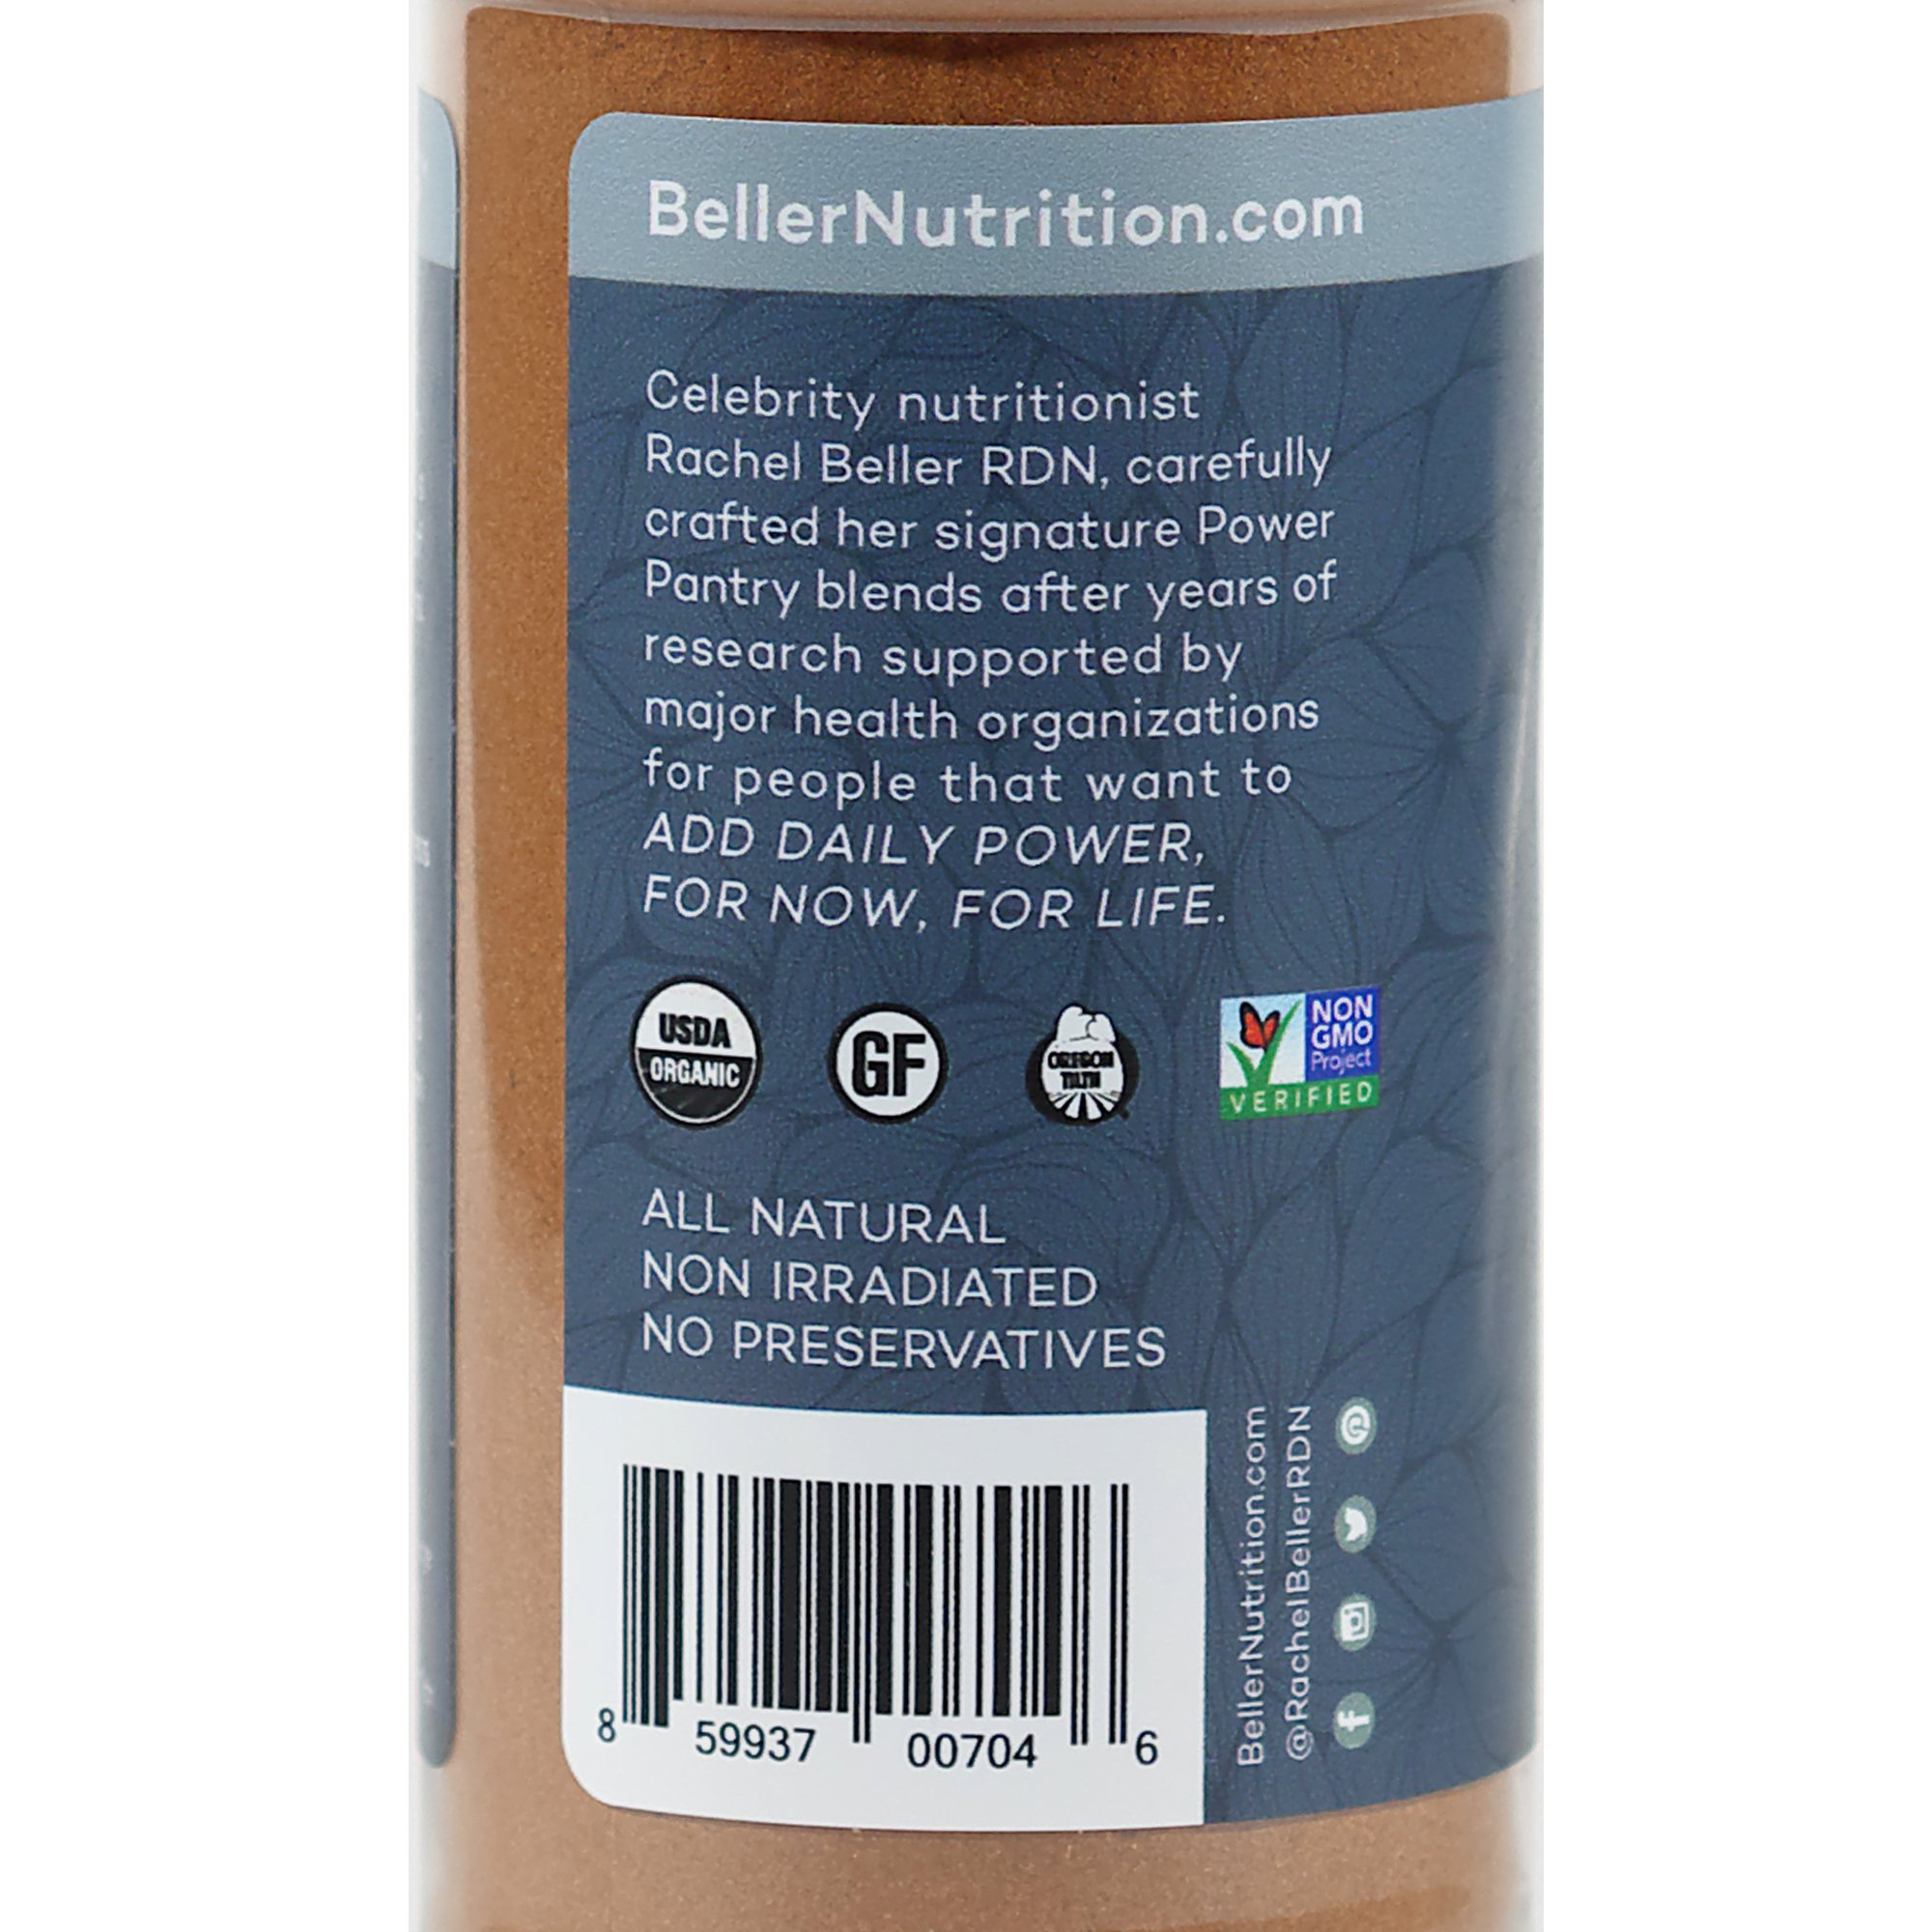 Rachel Beller's Power Pantry Ceylon Cinnamon - Organic Ceylon cinnamon spice, 3.1 ounce by Rachel Beller's Power Pantry (Image #4)